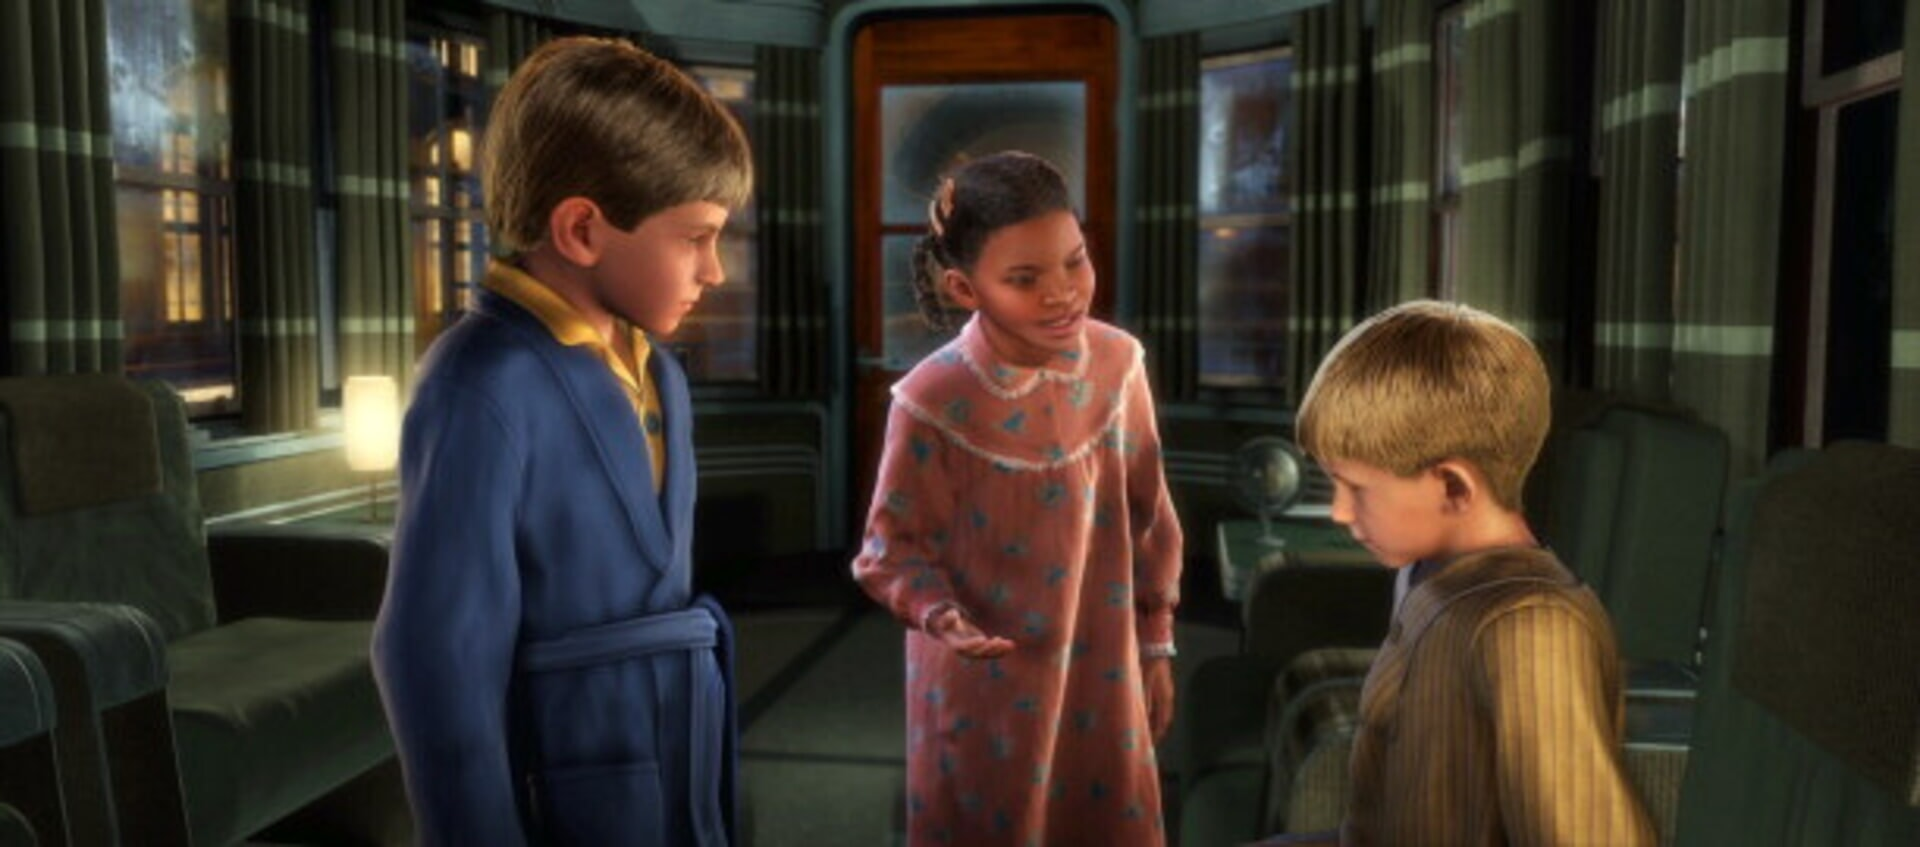 The Polar Express - Image 18